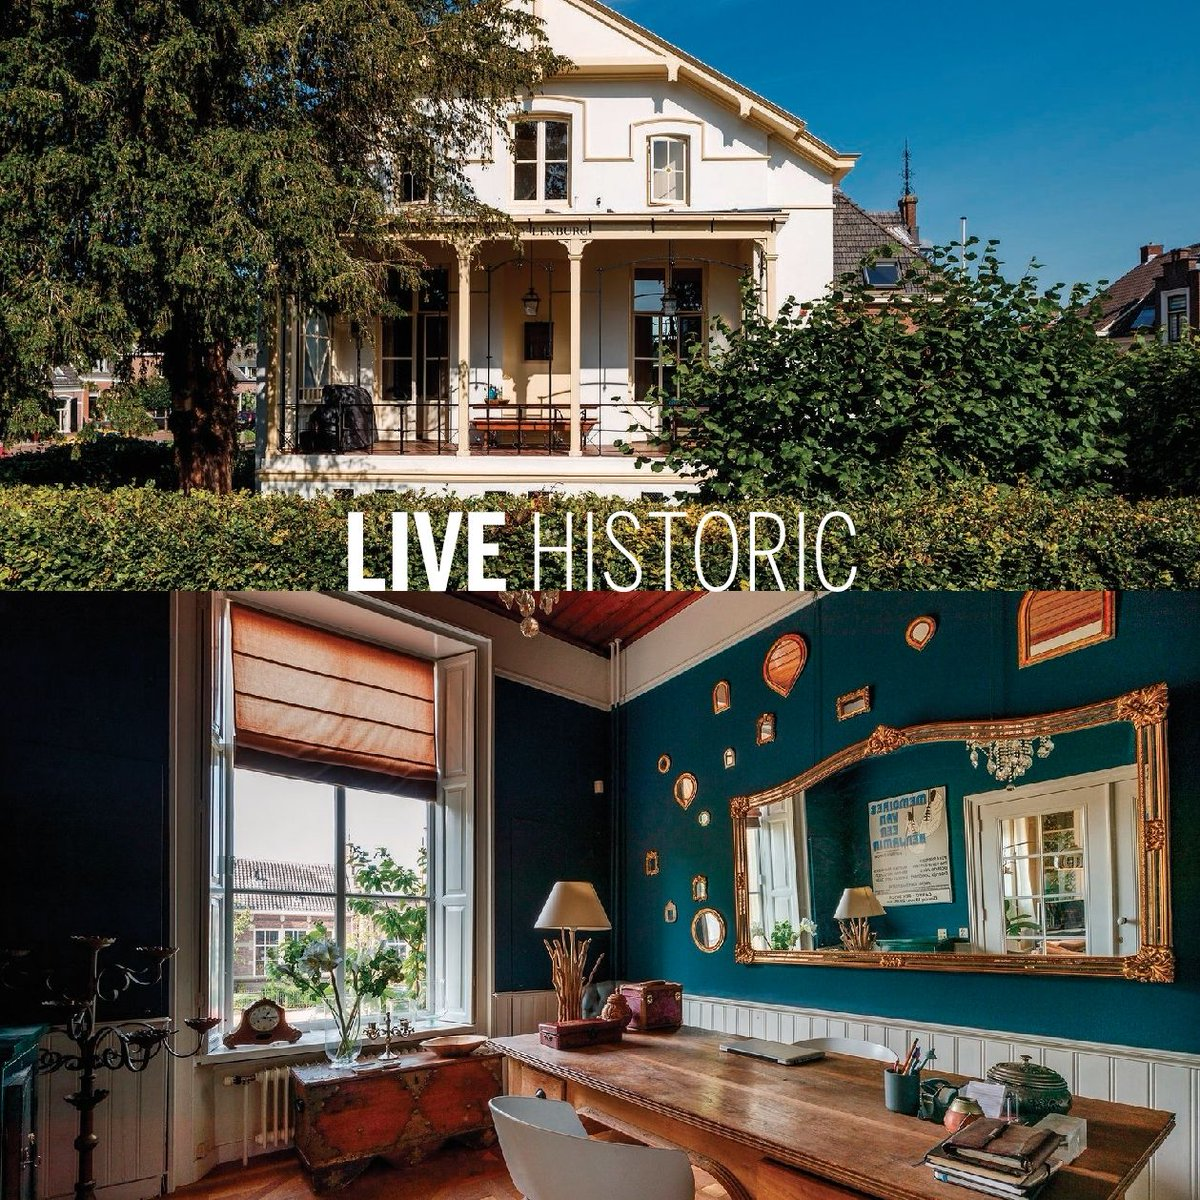 LIVE HISTORIC -- Just outside Utrecht in the charming village of Oud Zuilen you will find this enchanting mansion with a charming garden. #OudZuilen #historic #monument #sothebysrealtynetherlands #sothebysrealty #Netherlands   INFO: https://buff.ly/2JSFno5